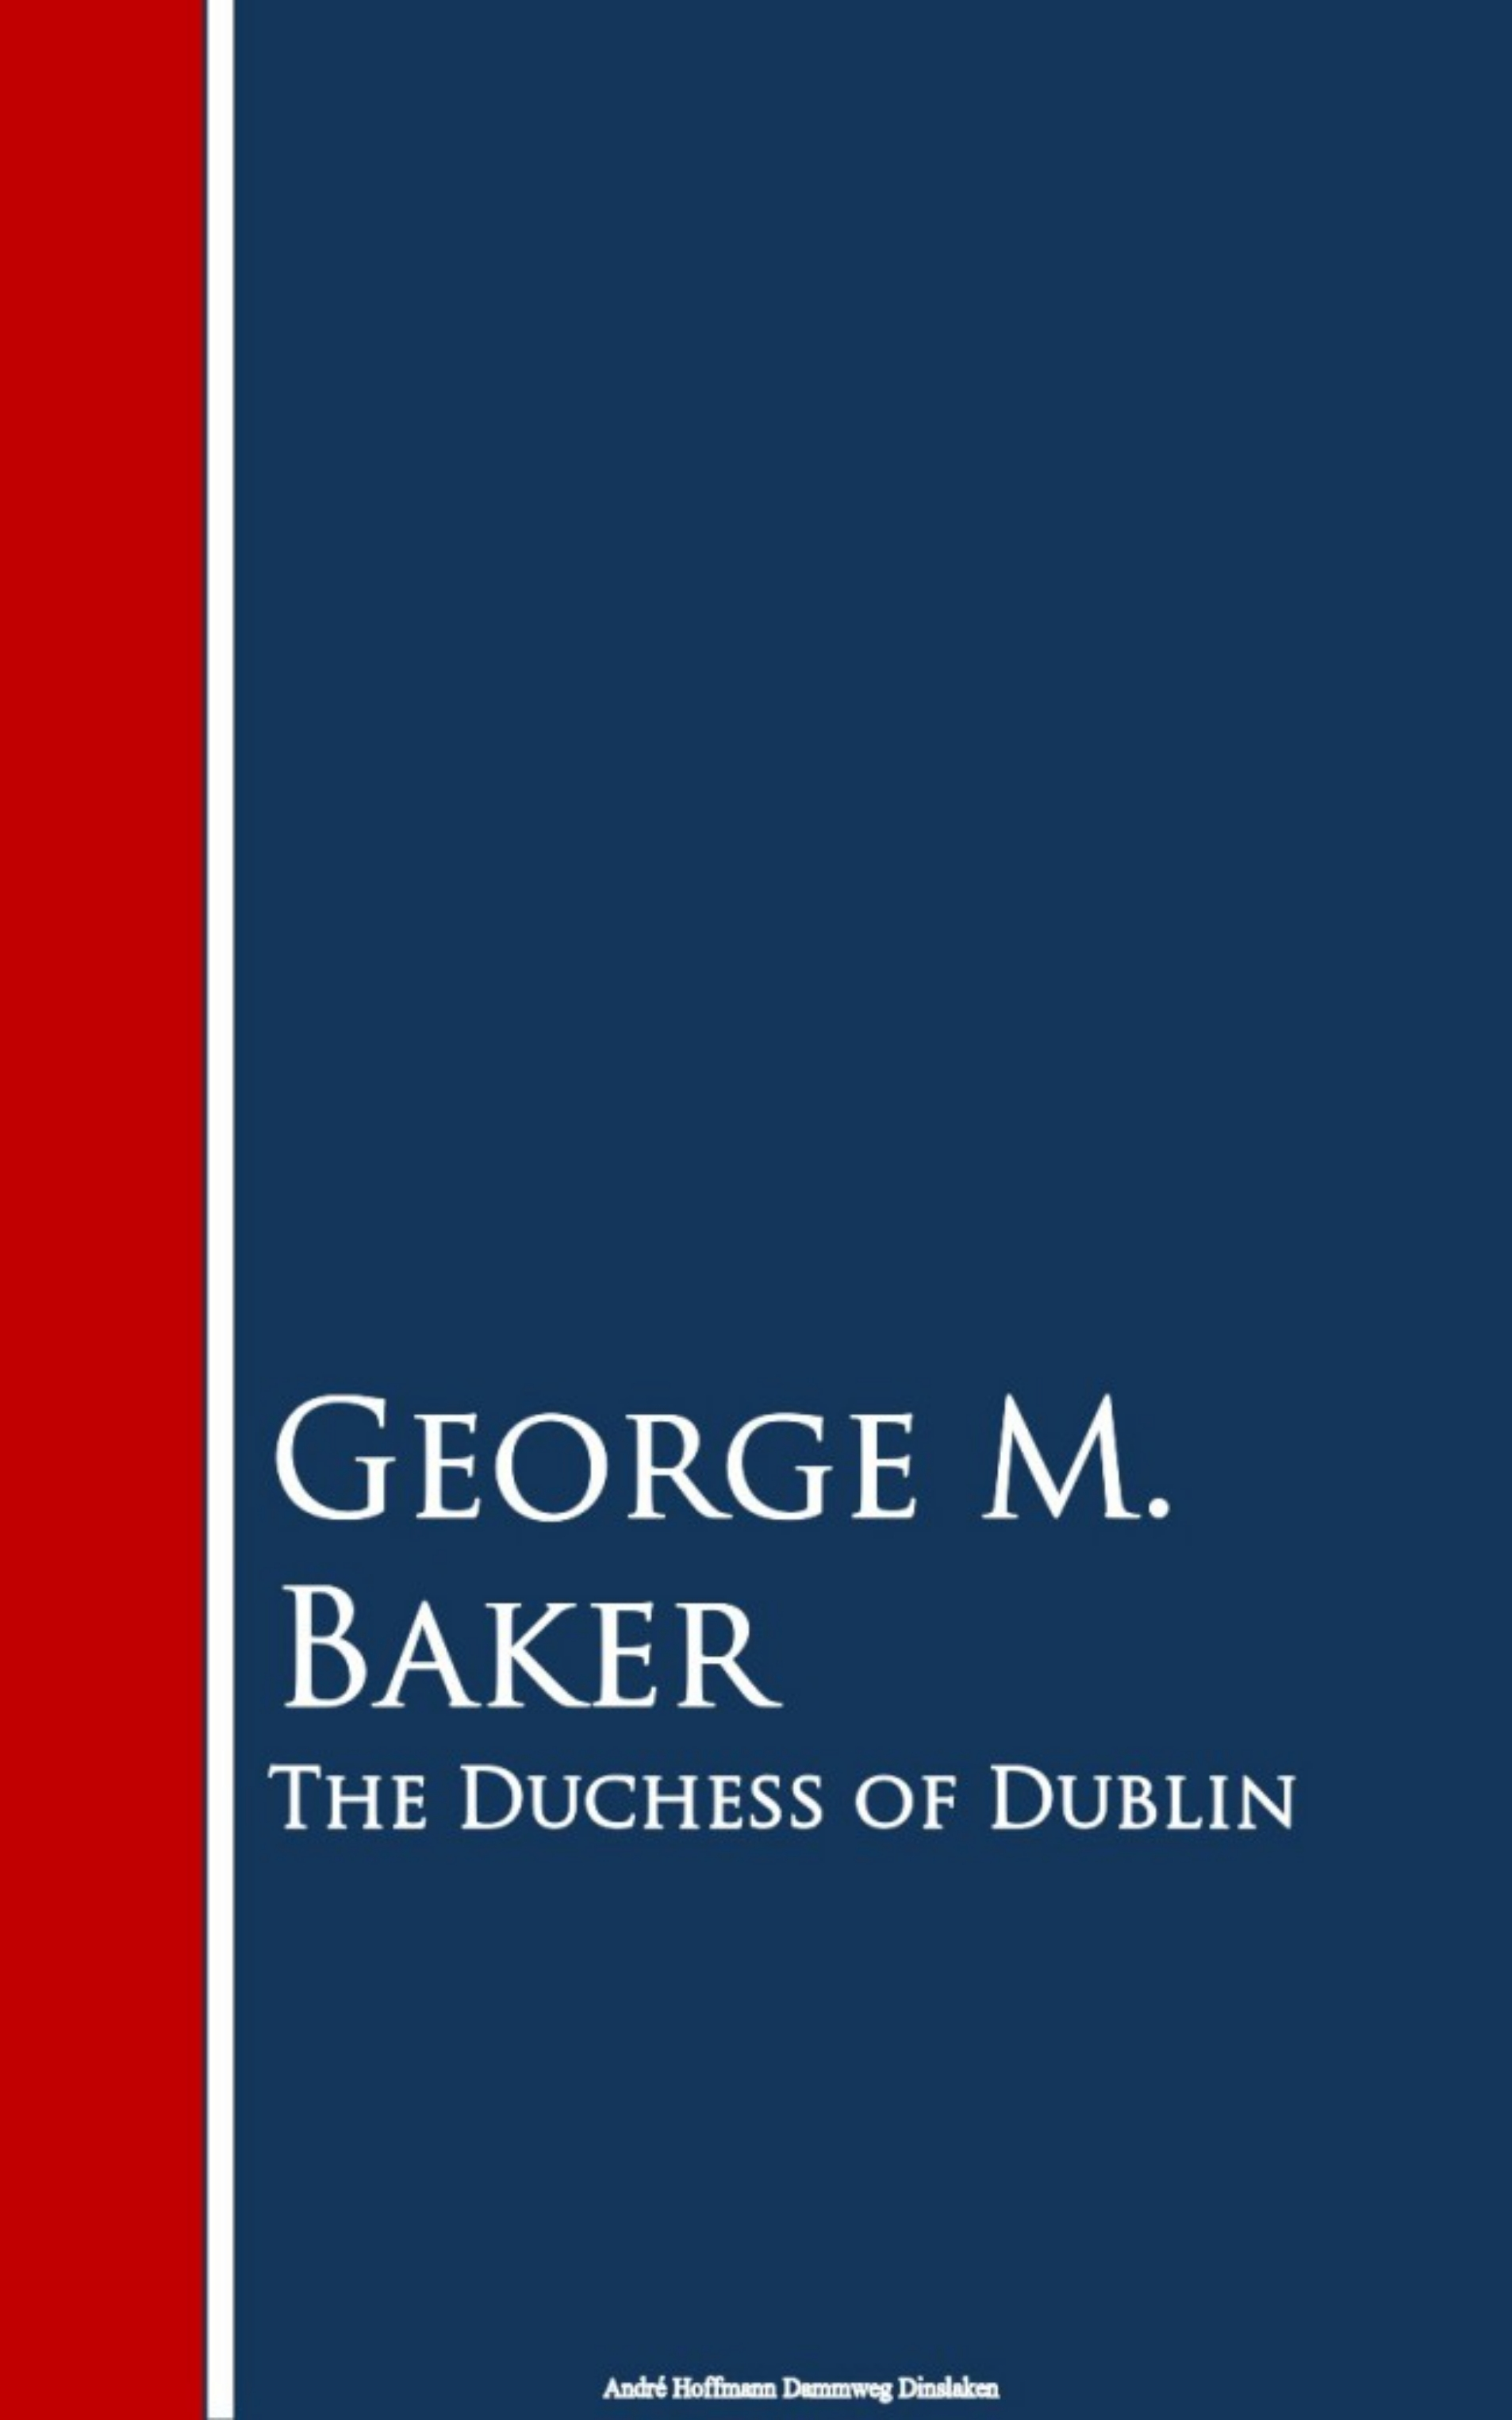 George M. Baker The Duchess of Dublin the artful baker